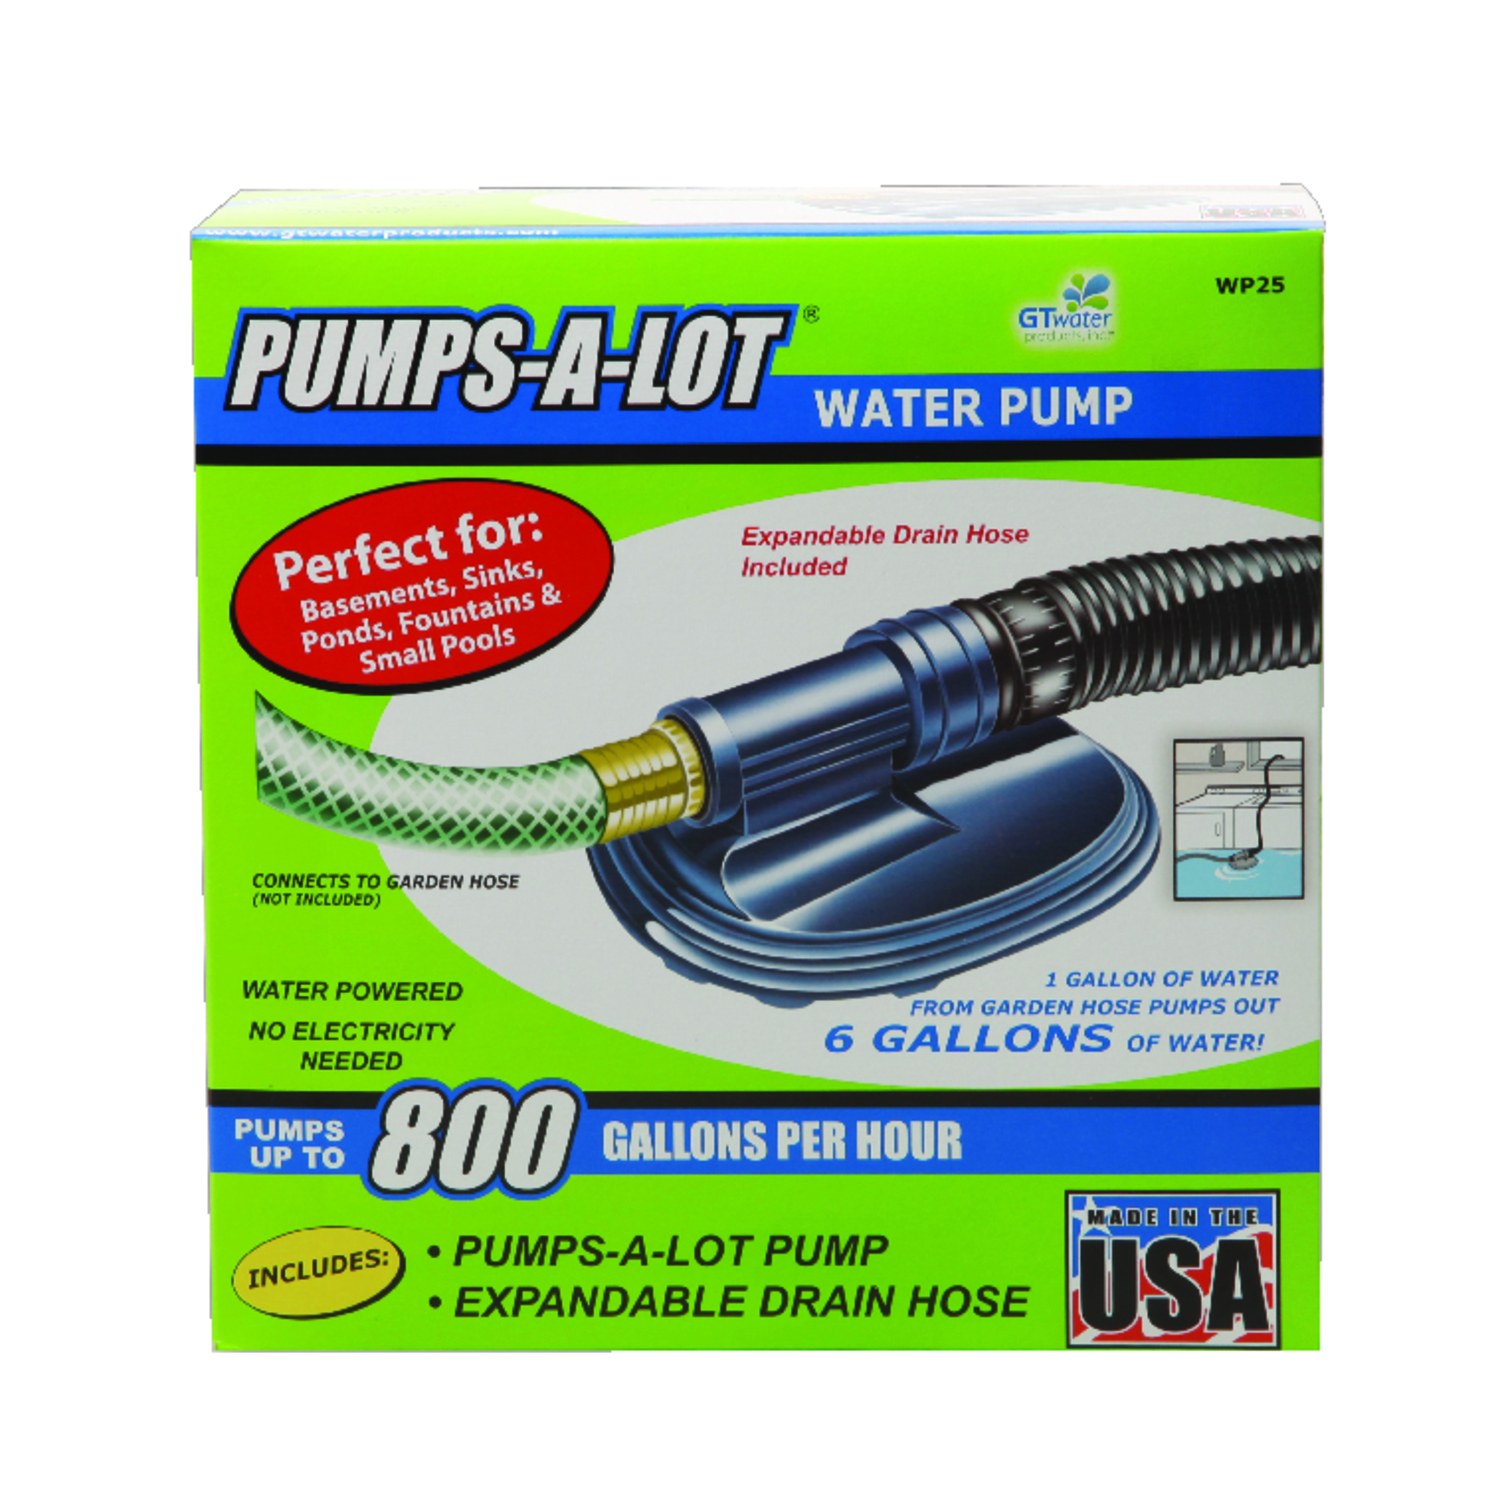 Pump Water G T Water Pumps A Lot Plastic Water Pump Ace Hardware